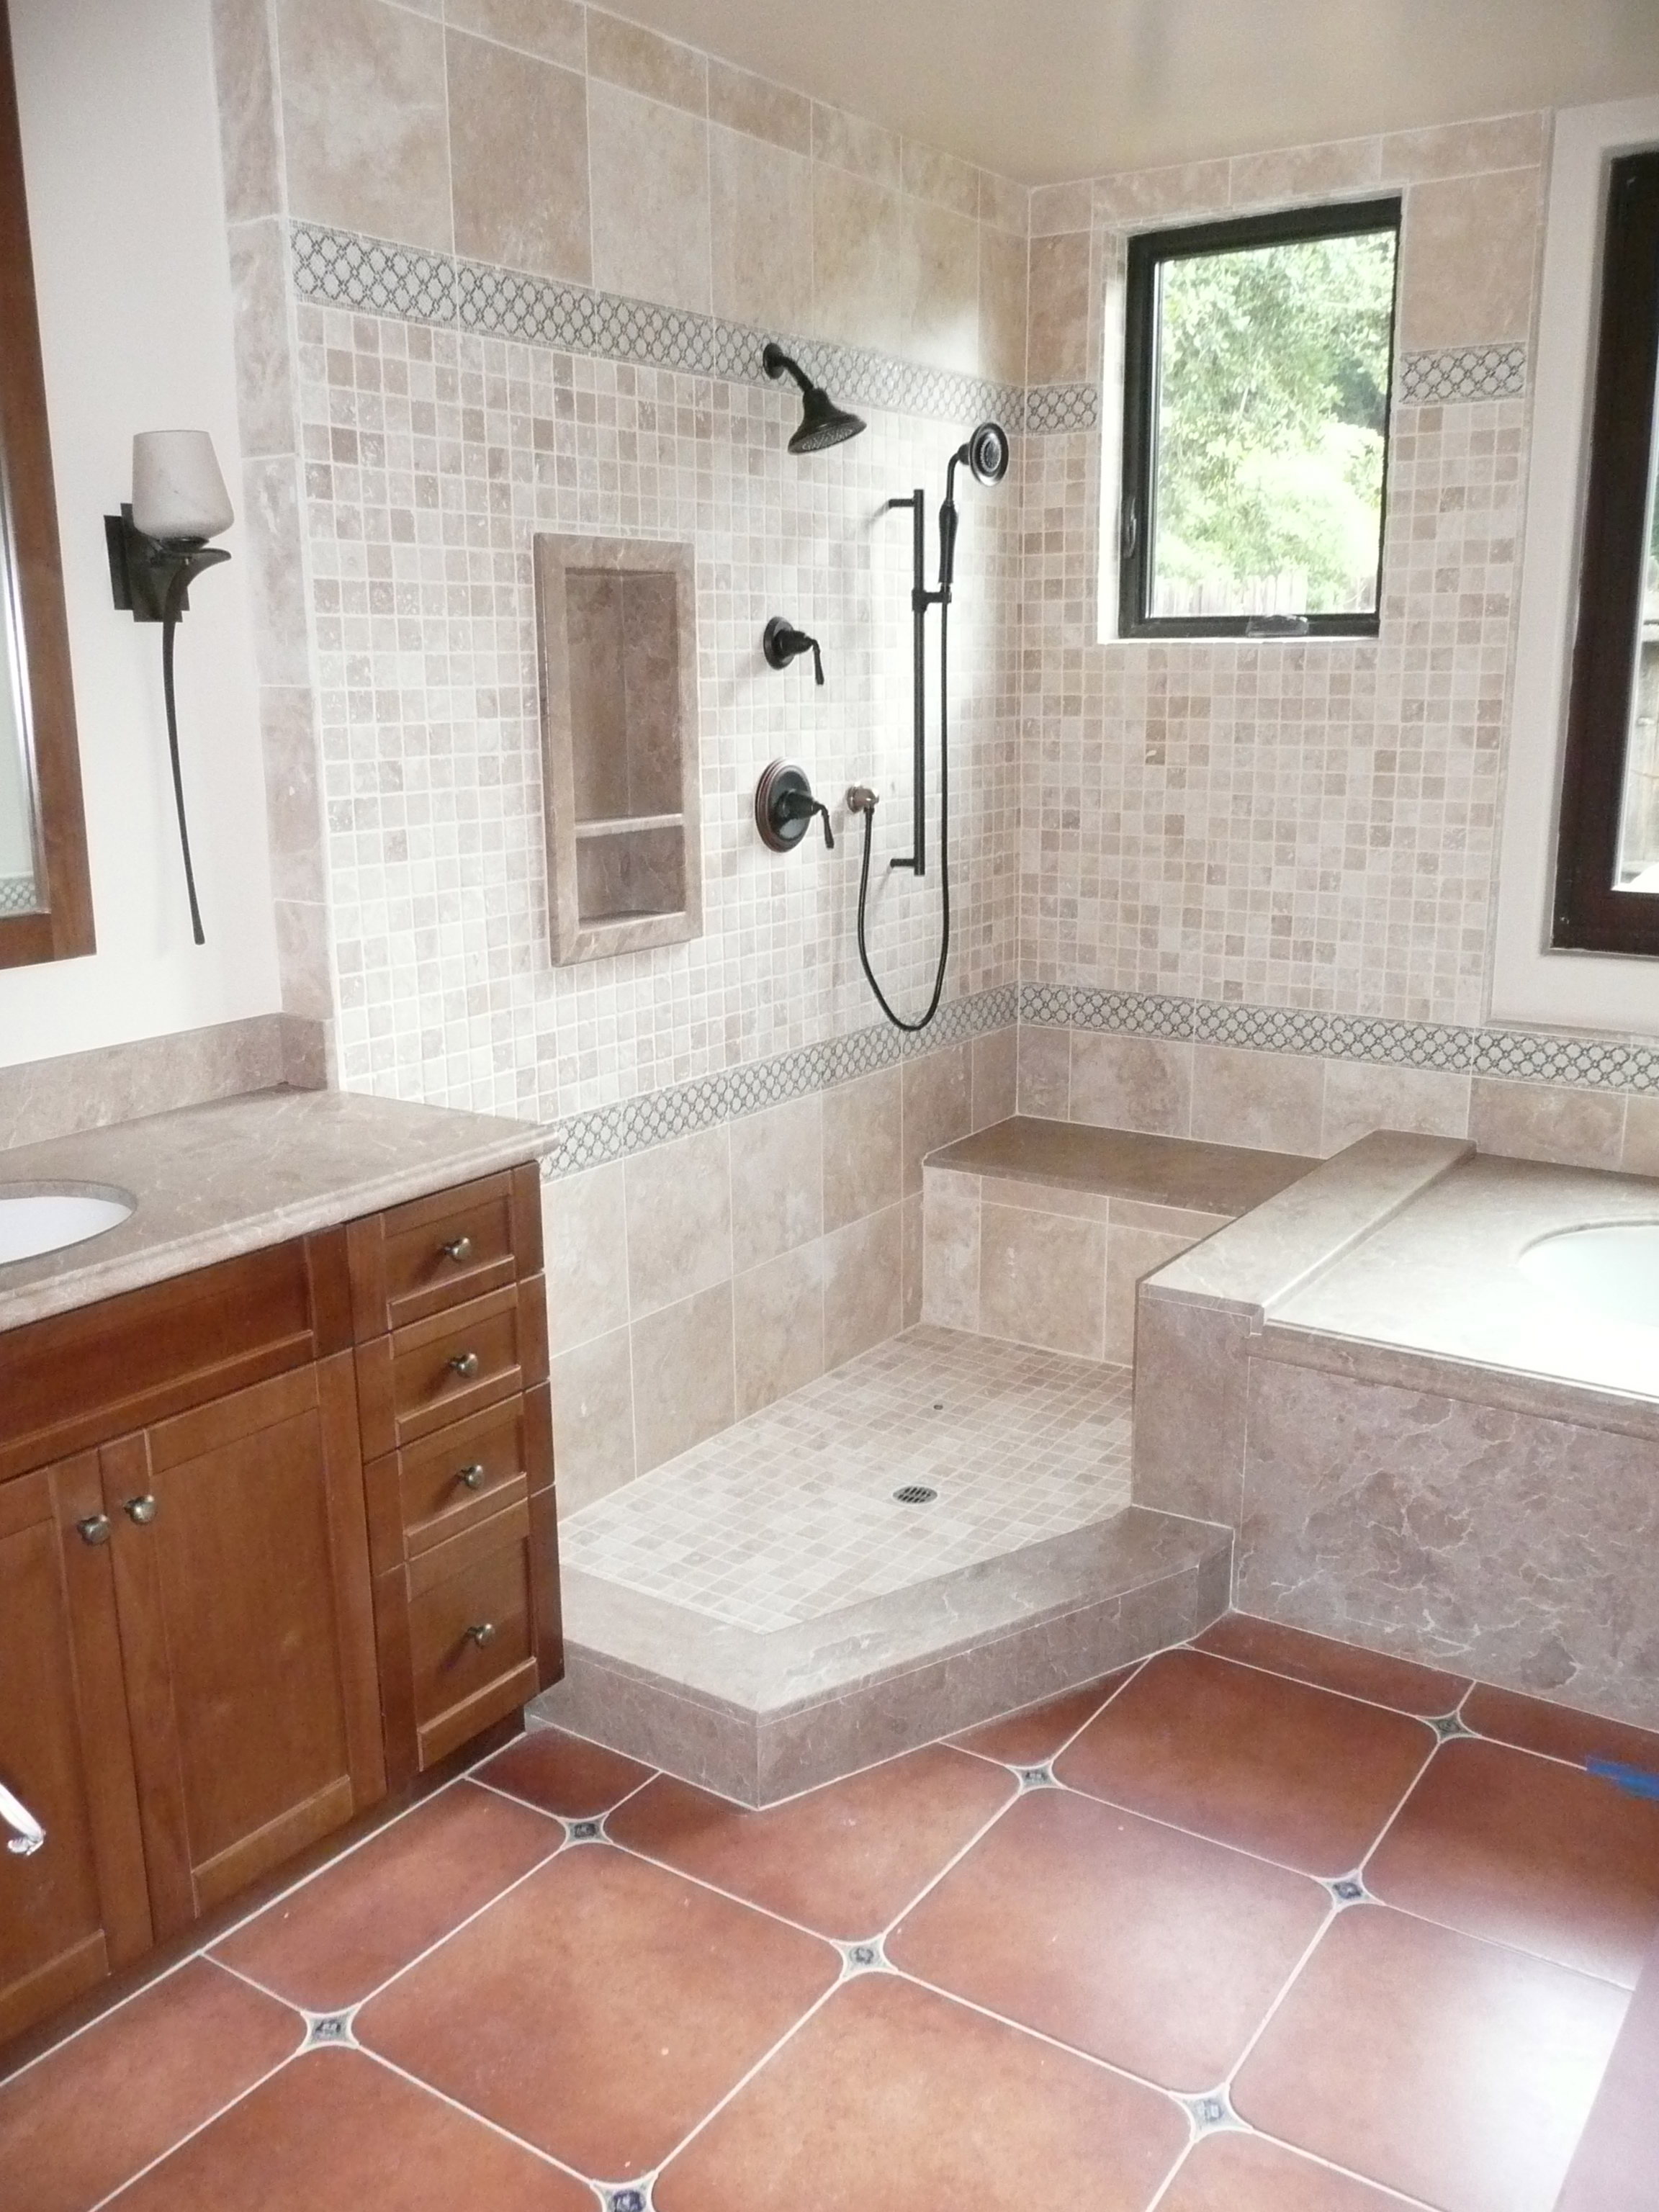 Eco Housing and Green Remodel Ideas: Looking at Menlo ... on Master Bathroom Remodel Ideas  id=21390